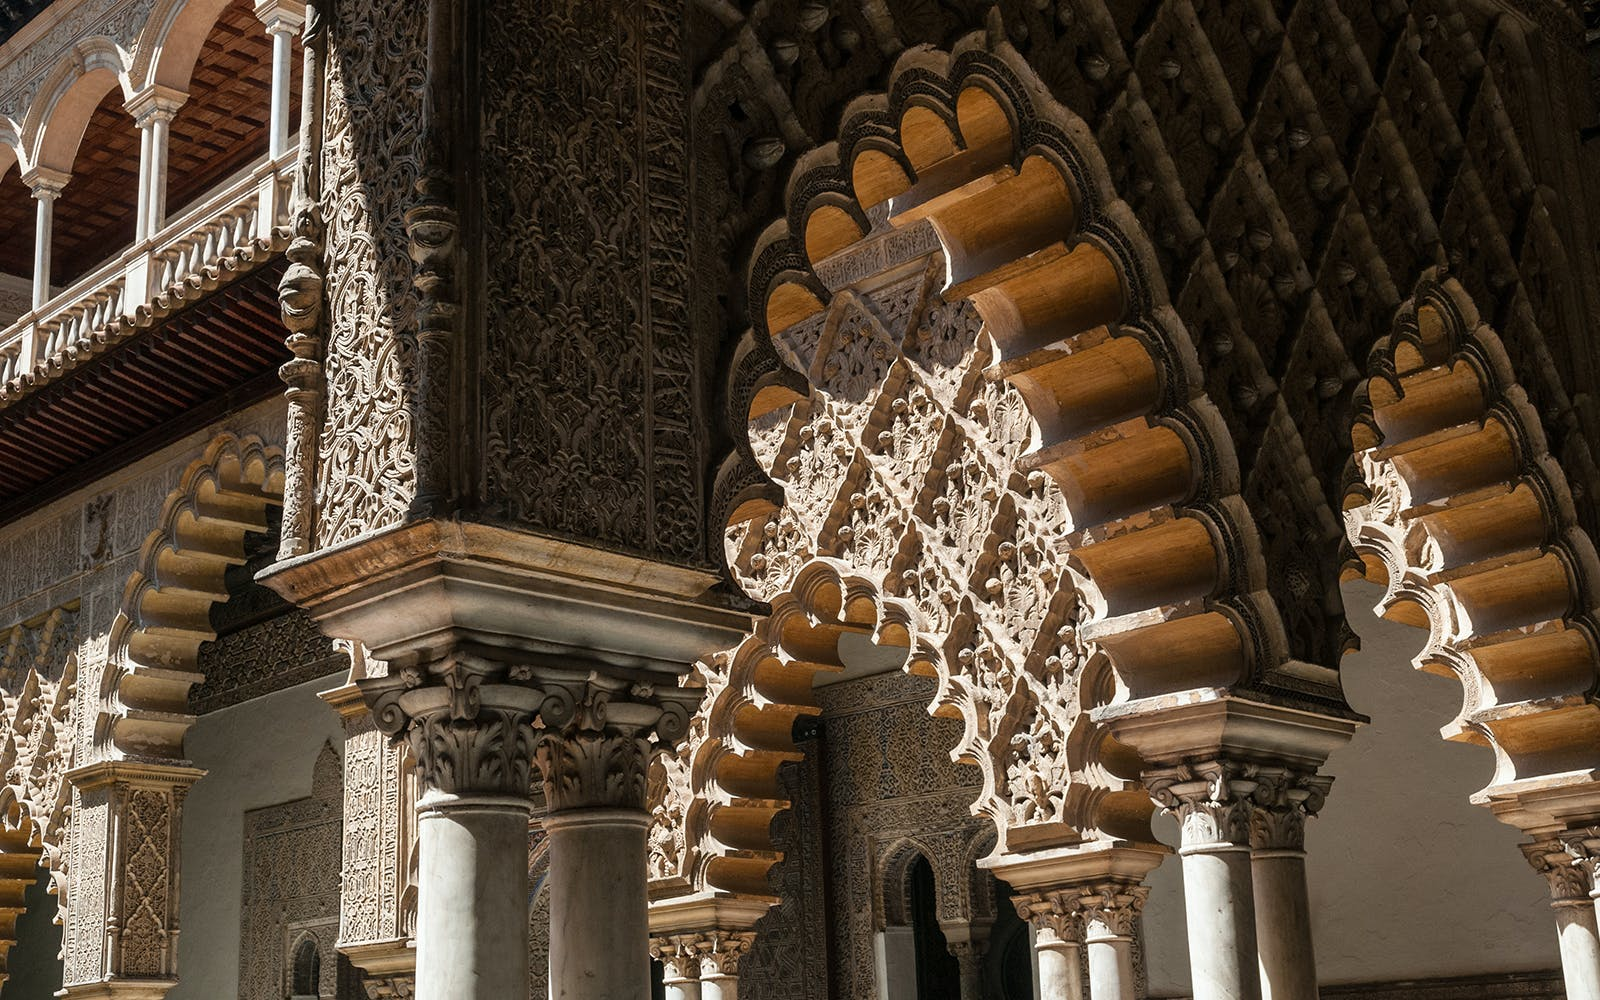 Skip the Line Guided Tour to Alcázar of Seville